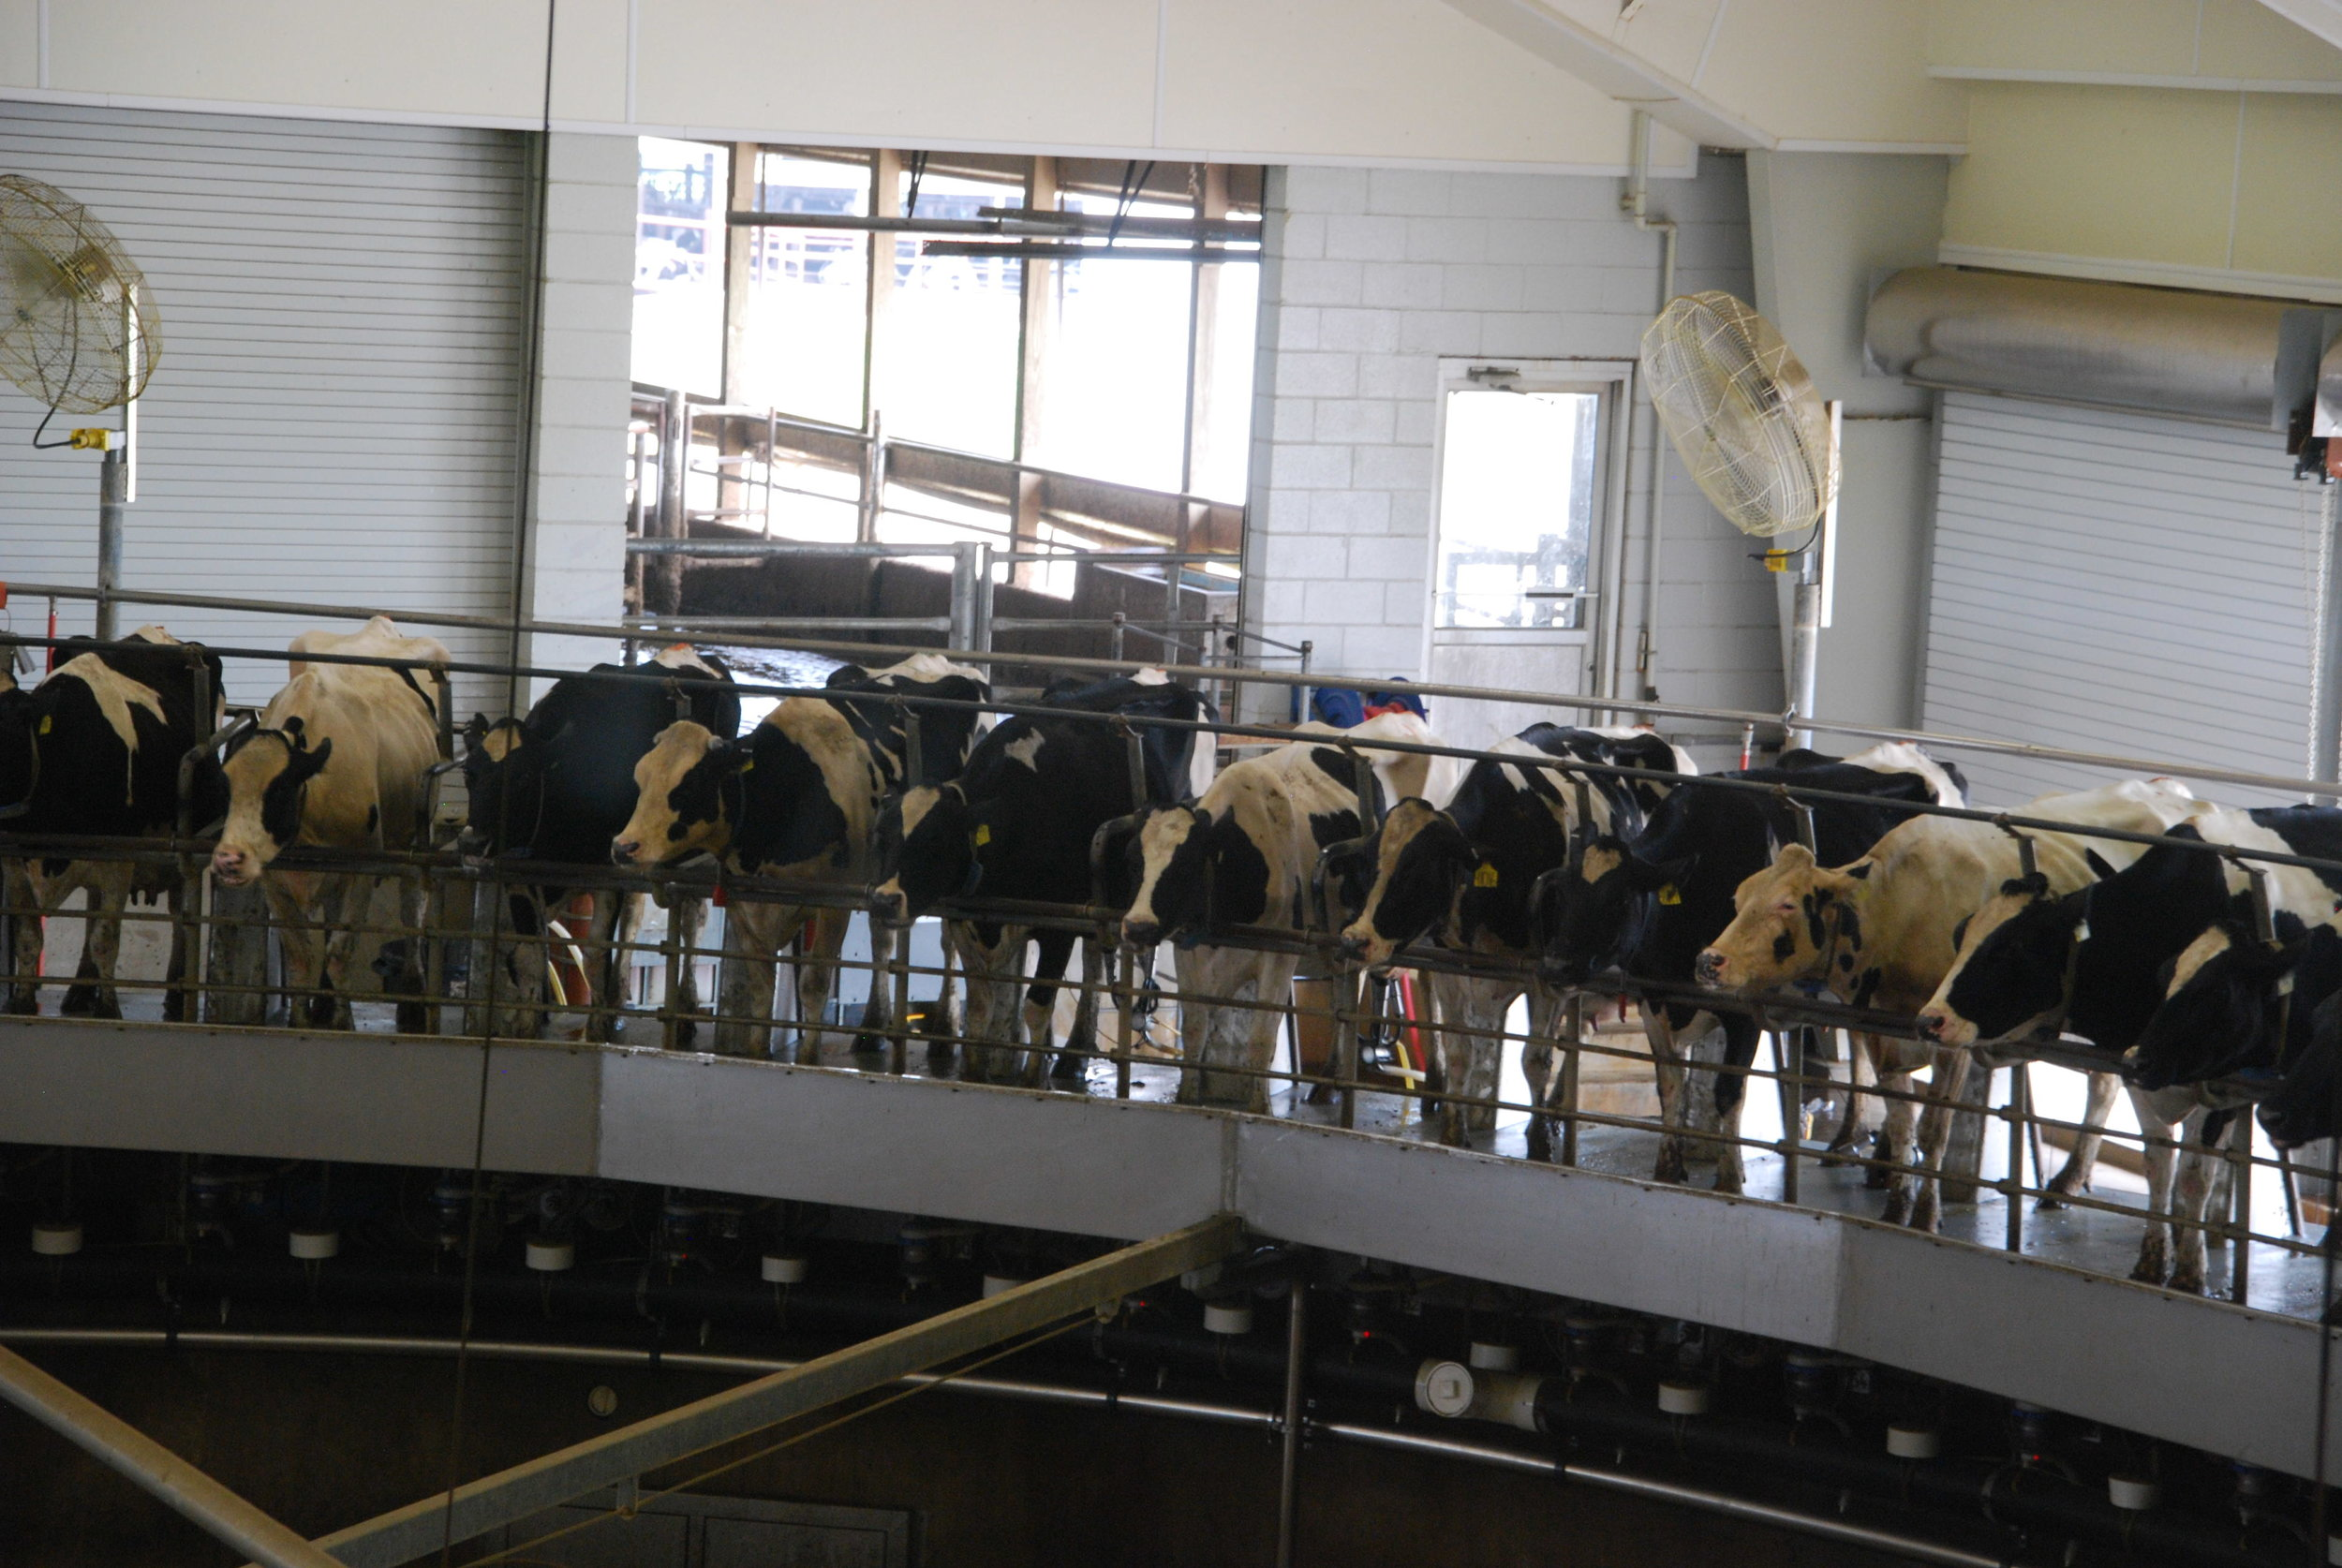 Milking machine with cows in for milking. Image by Michael Kappel showing Fair Oaks Farm.